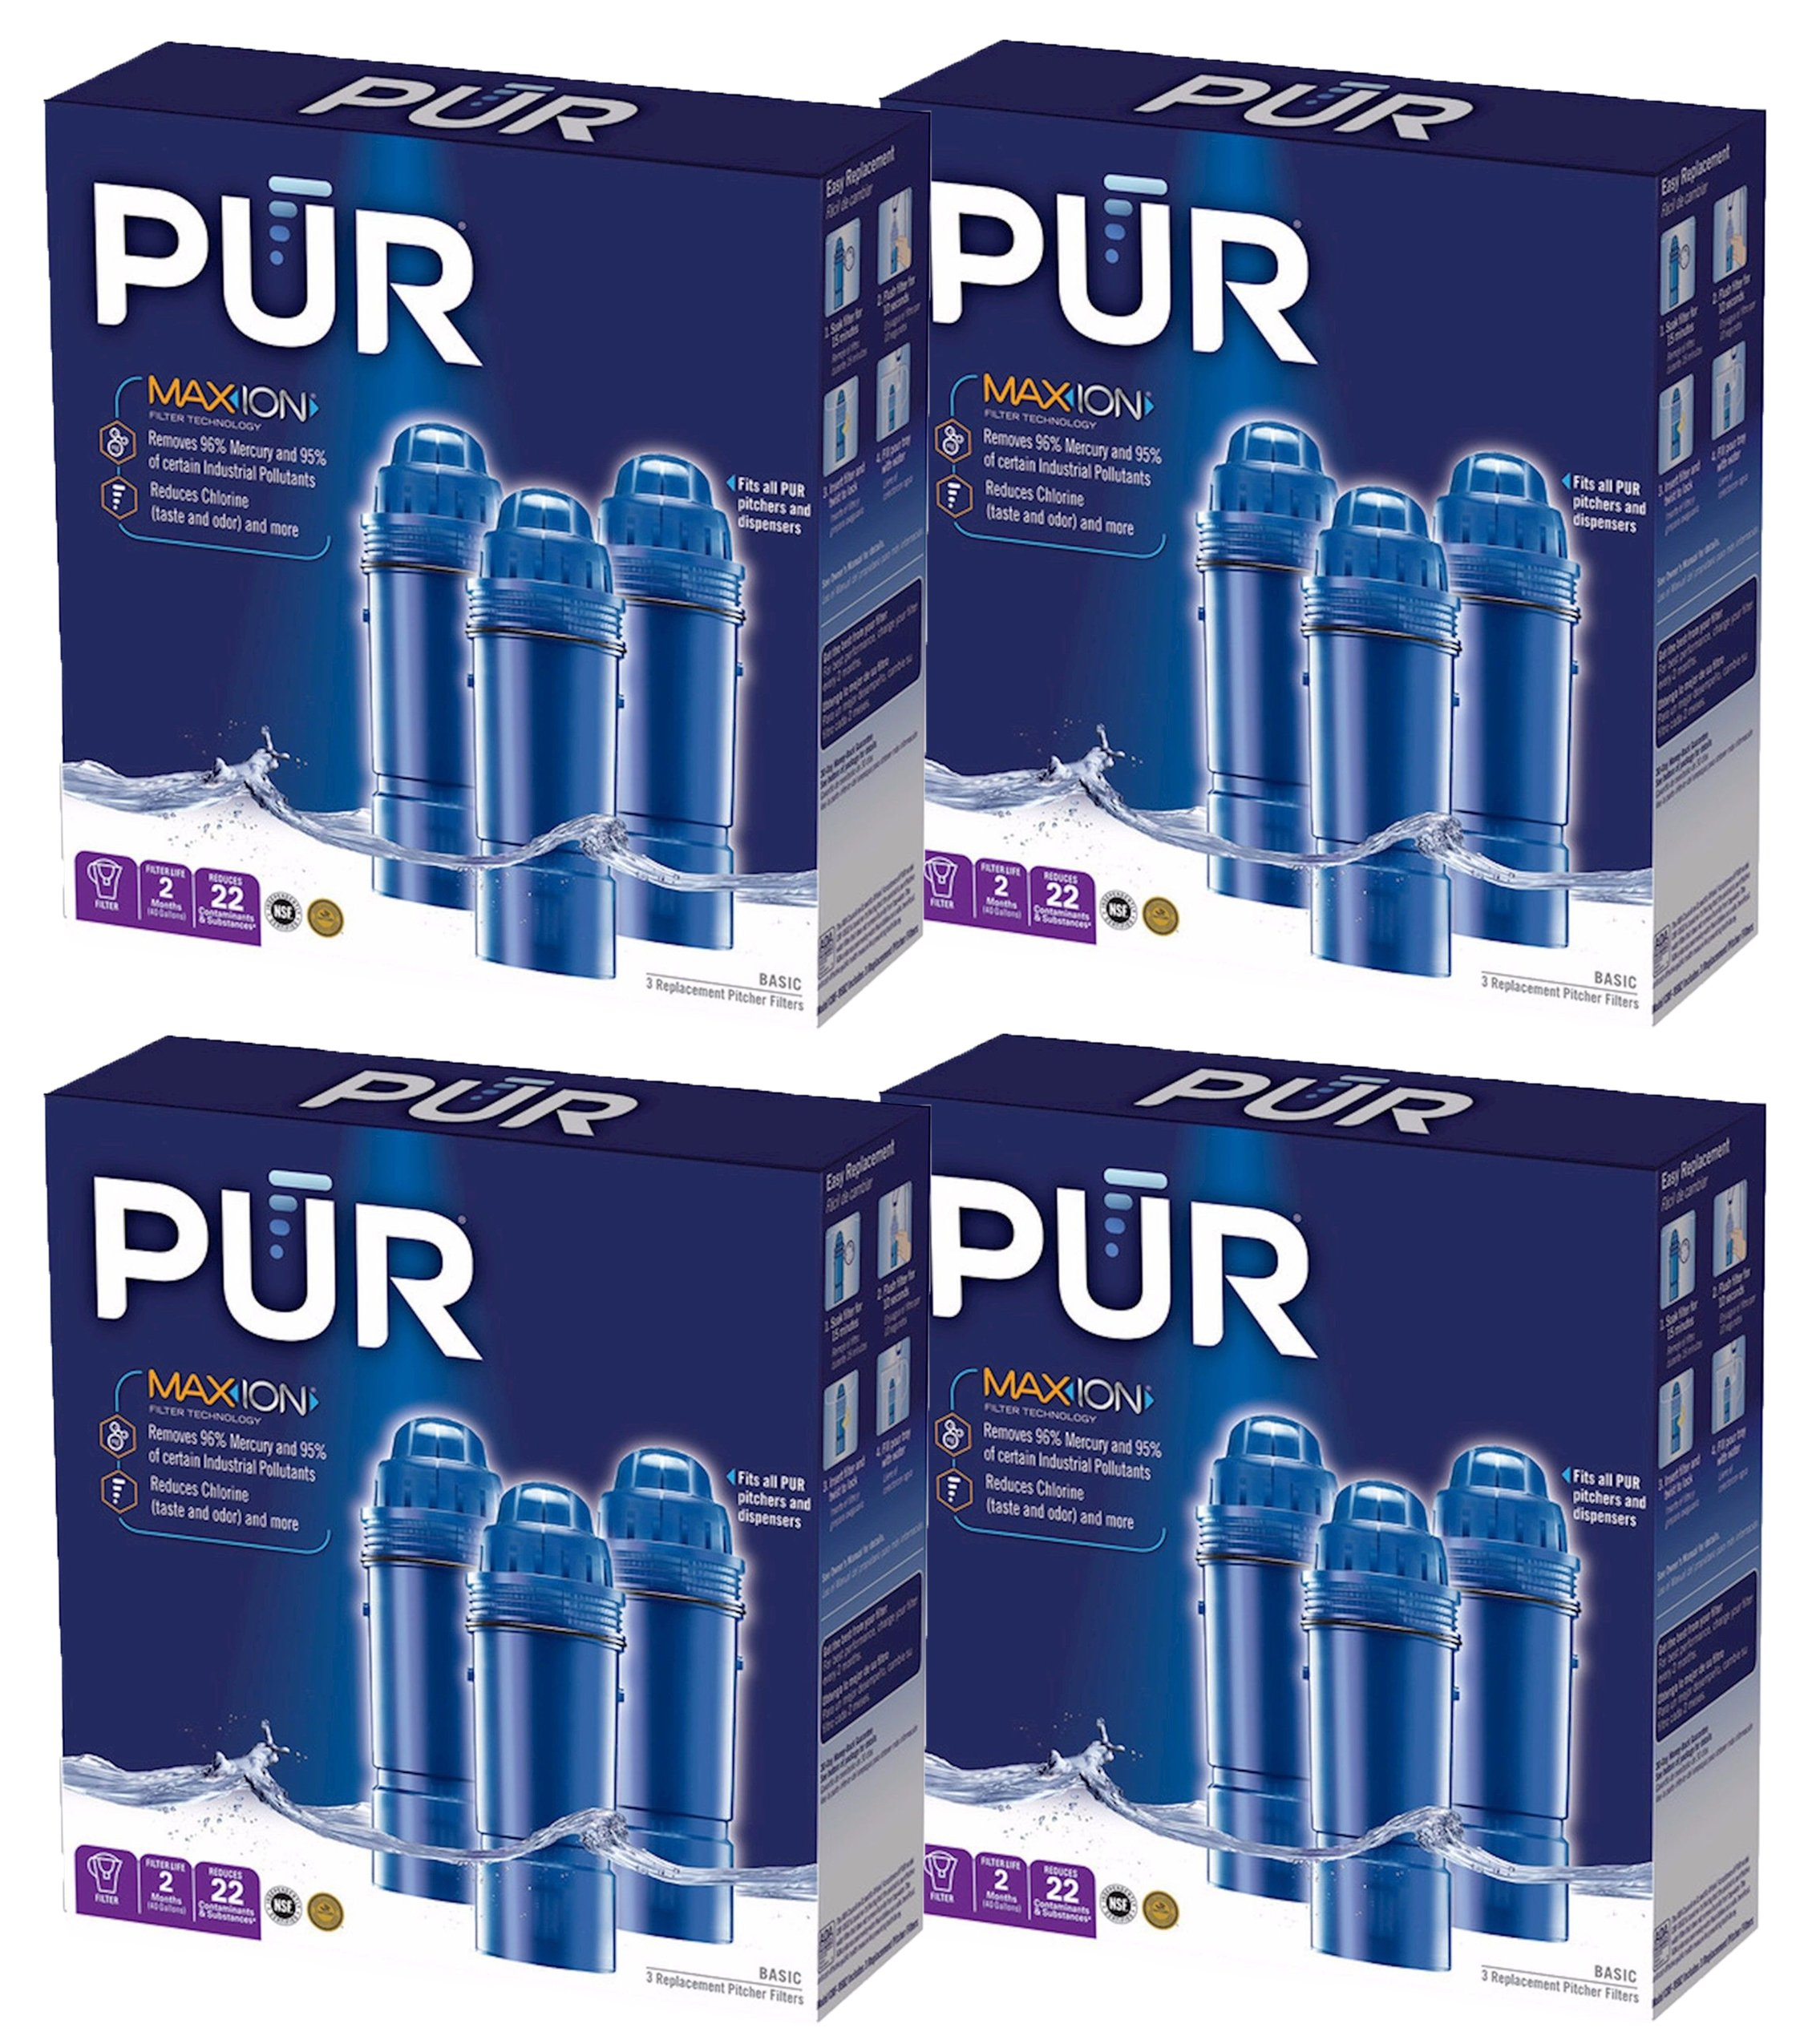 PUR Water Filters Provide Up to 120 Gallons of Clean Water CRF-950Z-3 | Fits Any Pitcher Replacement or Dispensers (PACK OF 12) by PUR